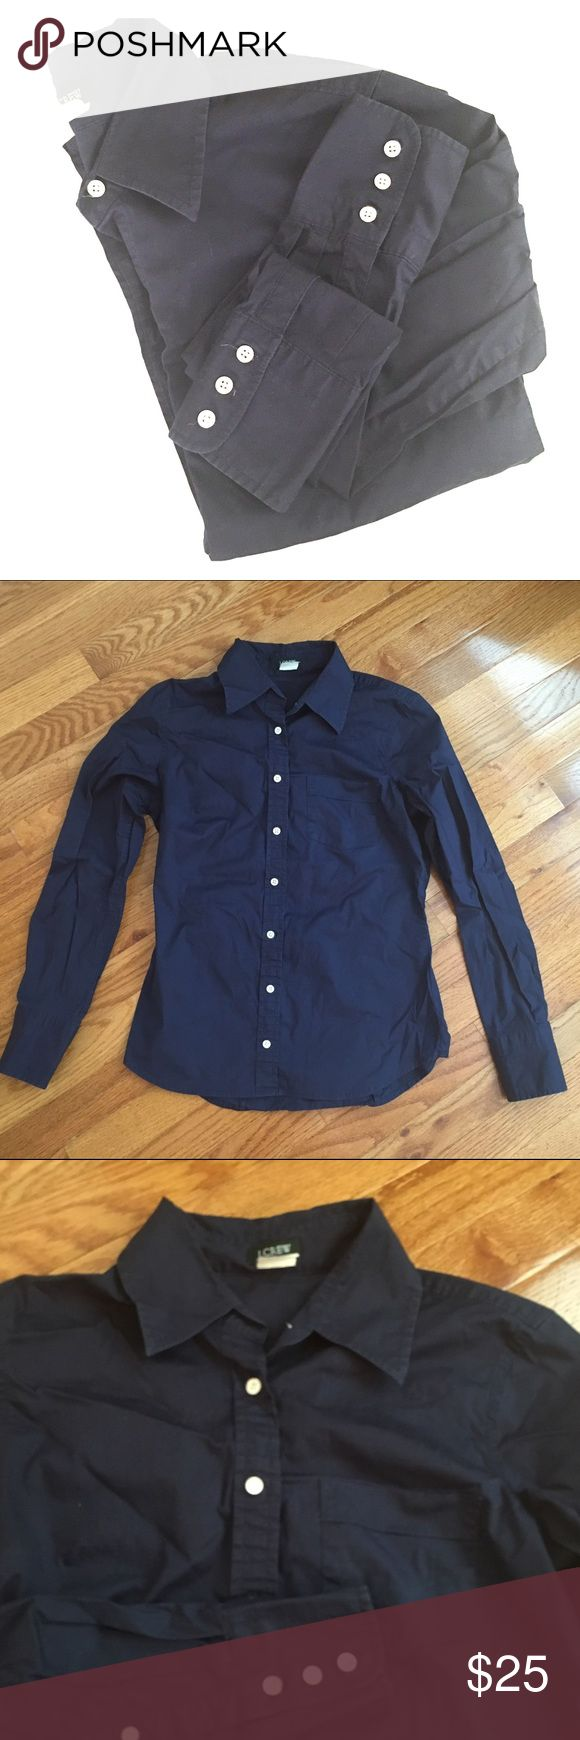 J. Crew Classic Stretch Button Down Sz XS This versatile piece is perfect for a casual dinner or a job interview. Navy blue with white buttons. Cotton and spandex blend. Pre-loved but in great condition. Please ask all questions! No trades. J. Crew Tops Button Down Shirts